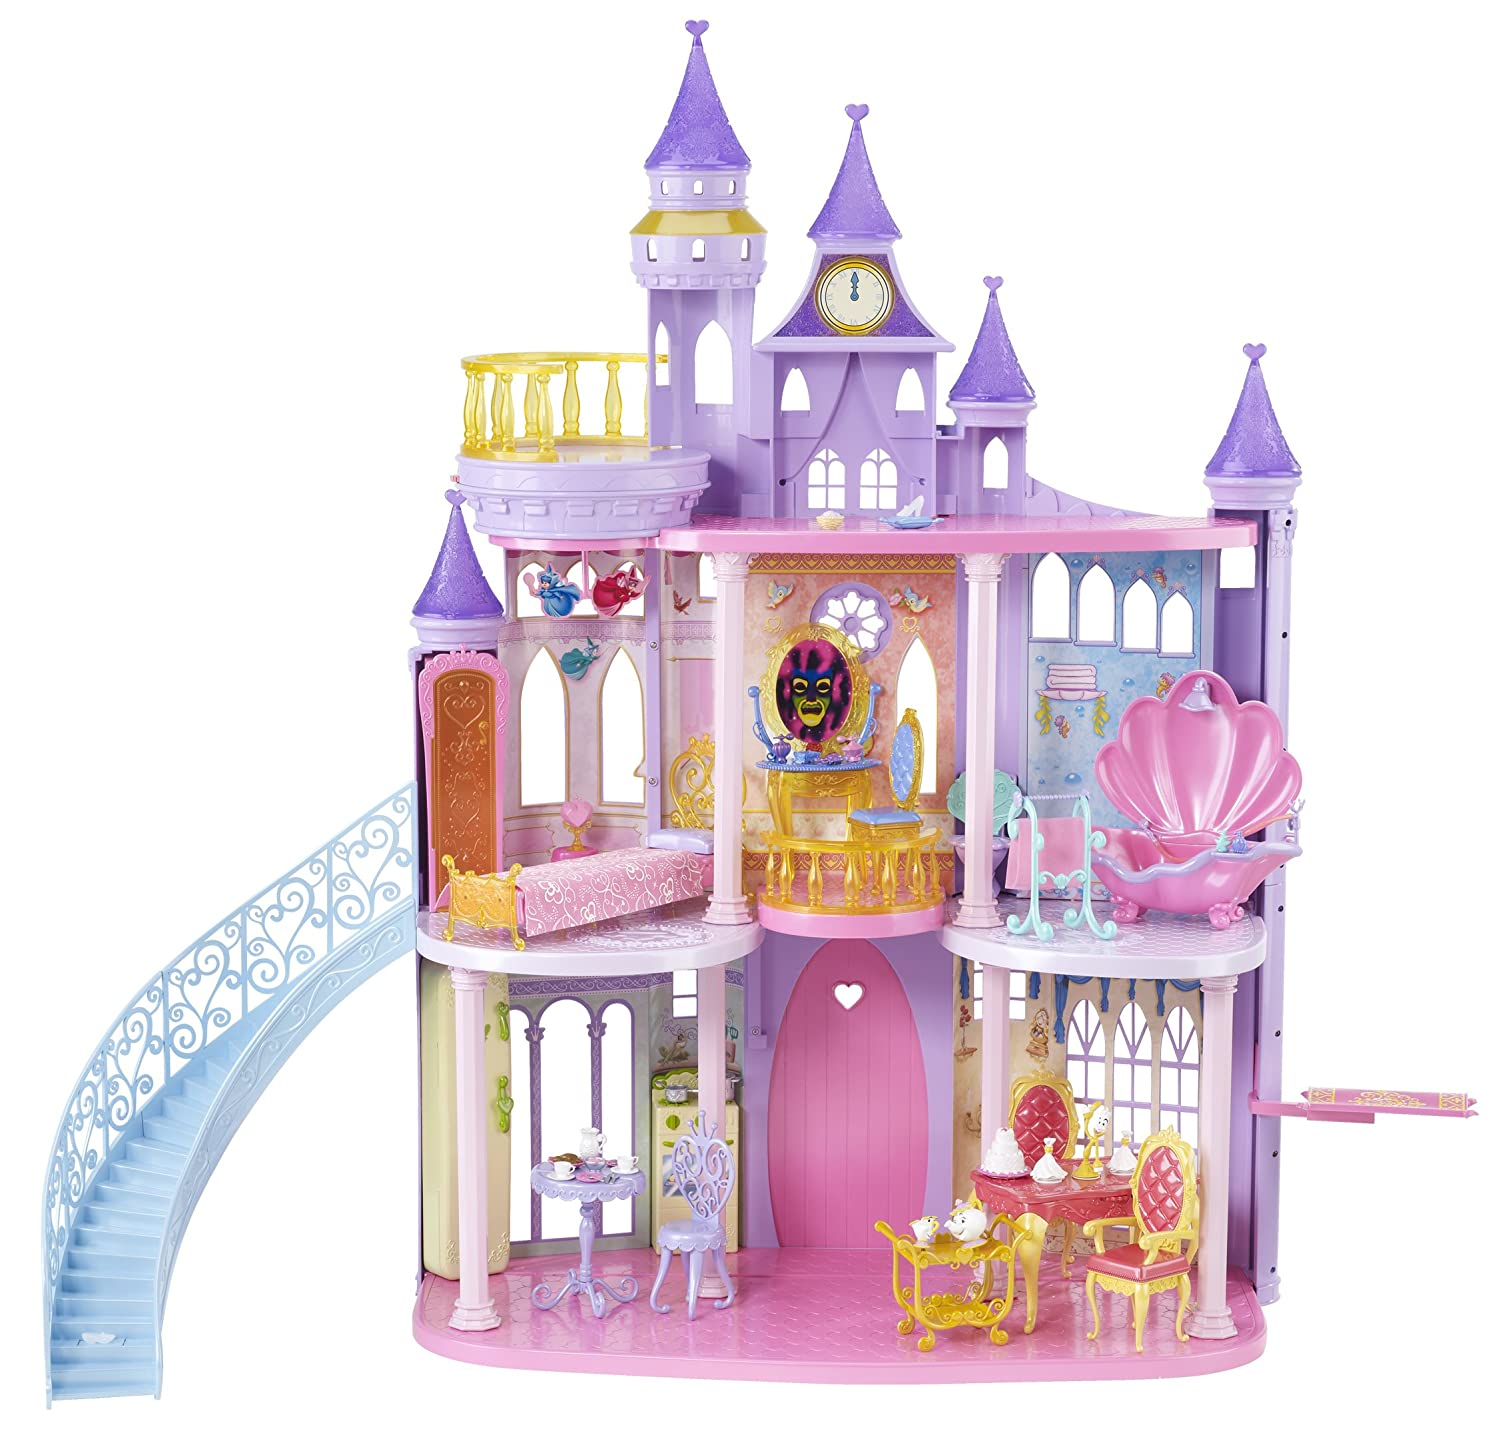 10 awesome barbie doll house models - 10 Awesome Barbie Doll House Models 34